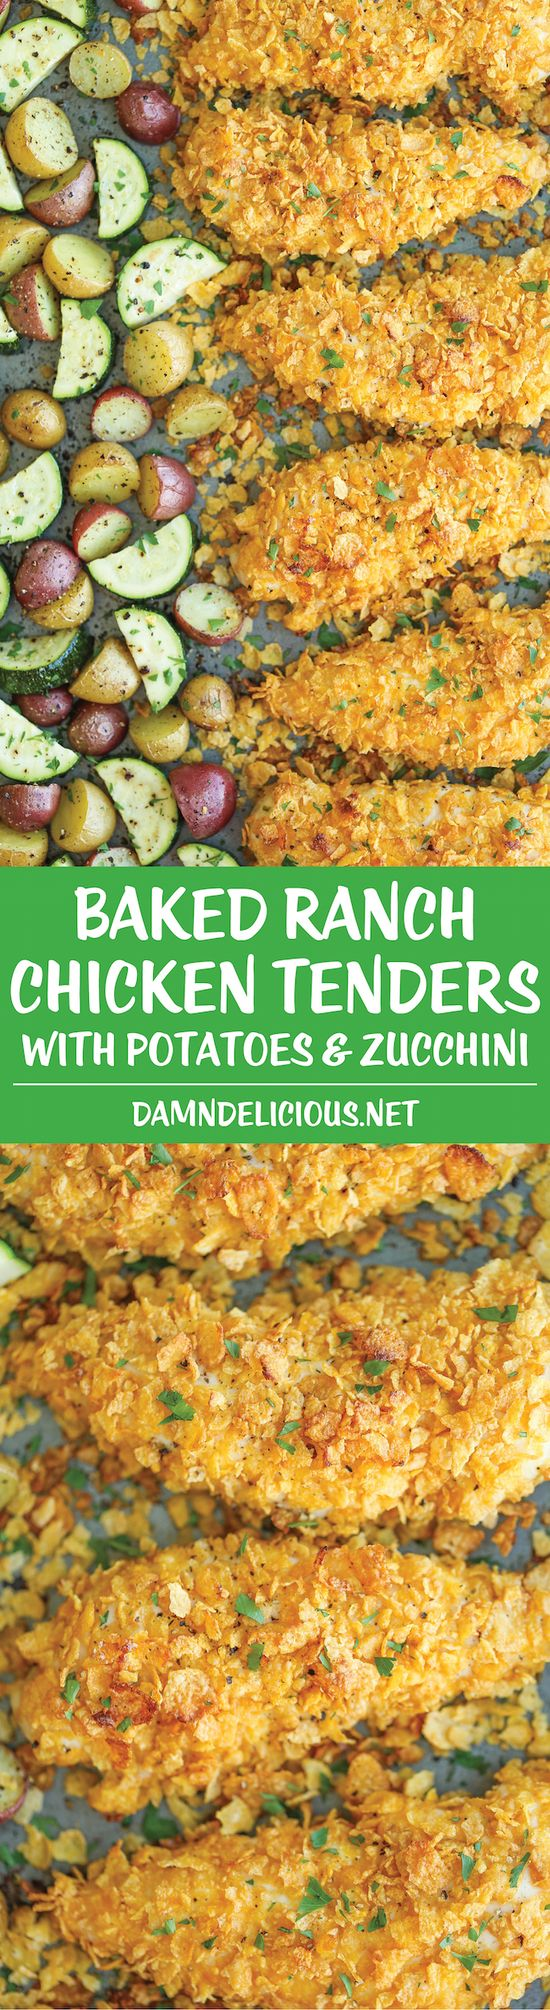 Quick, easy, delicious and healthy dinners. Grab a fork and dig in!  Contributors, please focus on QUICK DINNER recipes. That means one hour or LESS. No desserts, appetizers, sauces, soups, compilations, slow cooker recipes, etc. Pin your own recipes ONLY.  Please, no duplicate recipes! QUICK DINNER IDEAS  Board